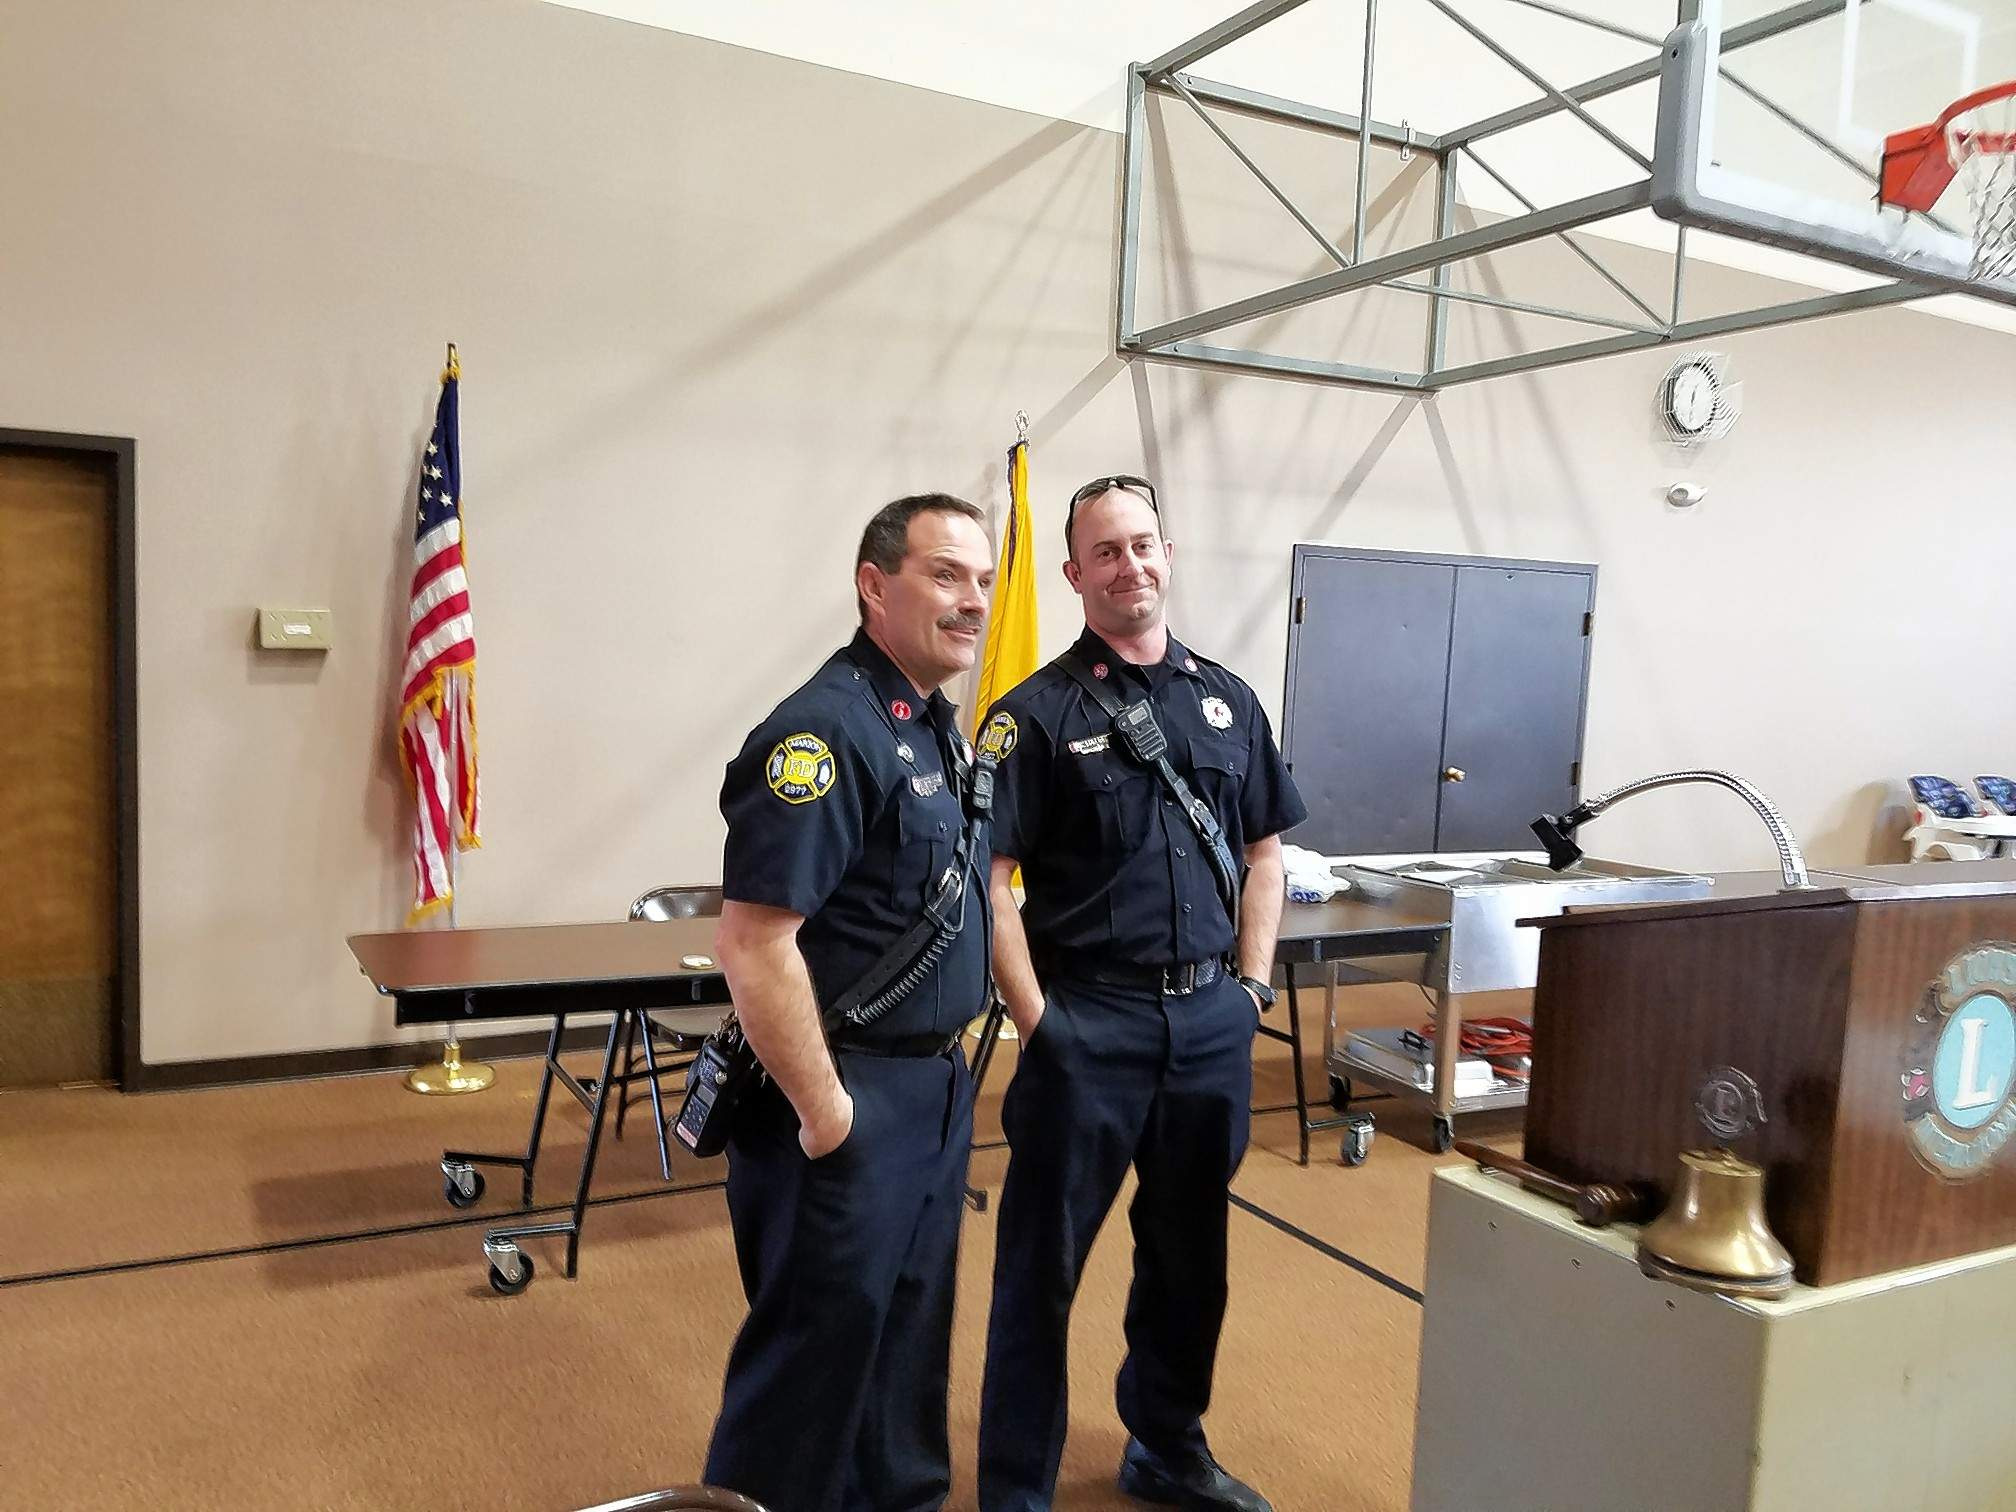 John D. Homan photoMarion firefighters Leo Whitehead (left) and Alex Robertson were the featured guests of the Marion Lions Club Wednesday. They discussed fire safety programs that they present to third-graders in the school district.